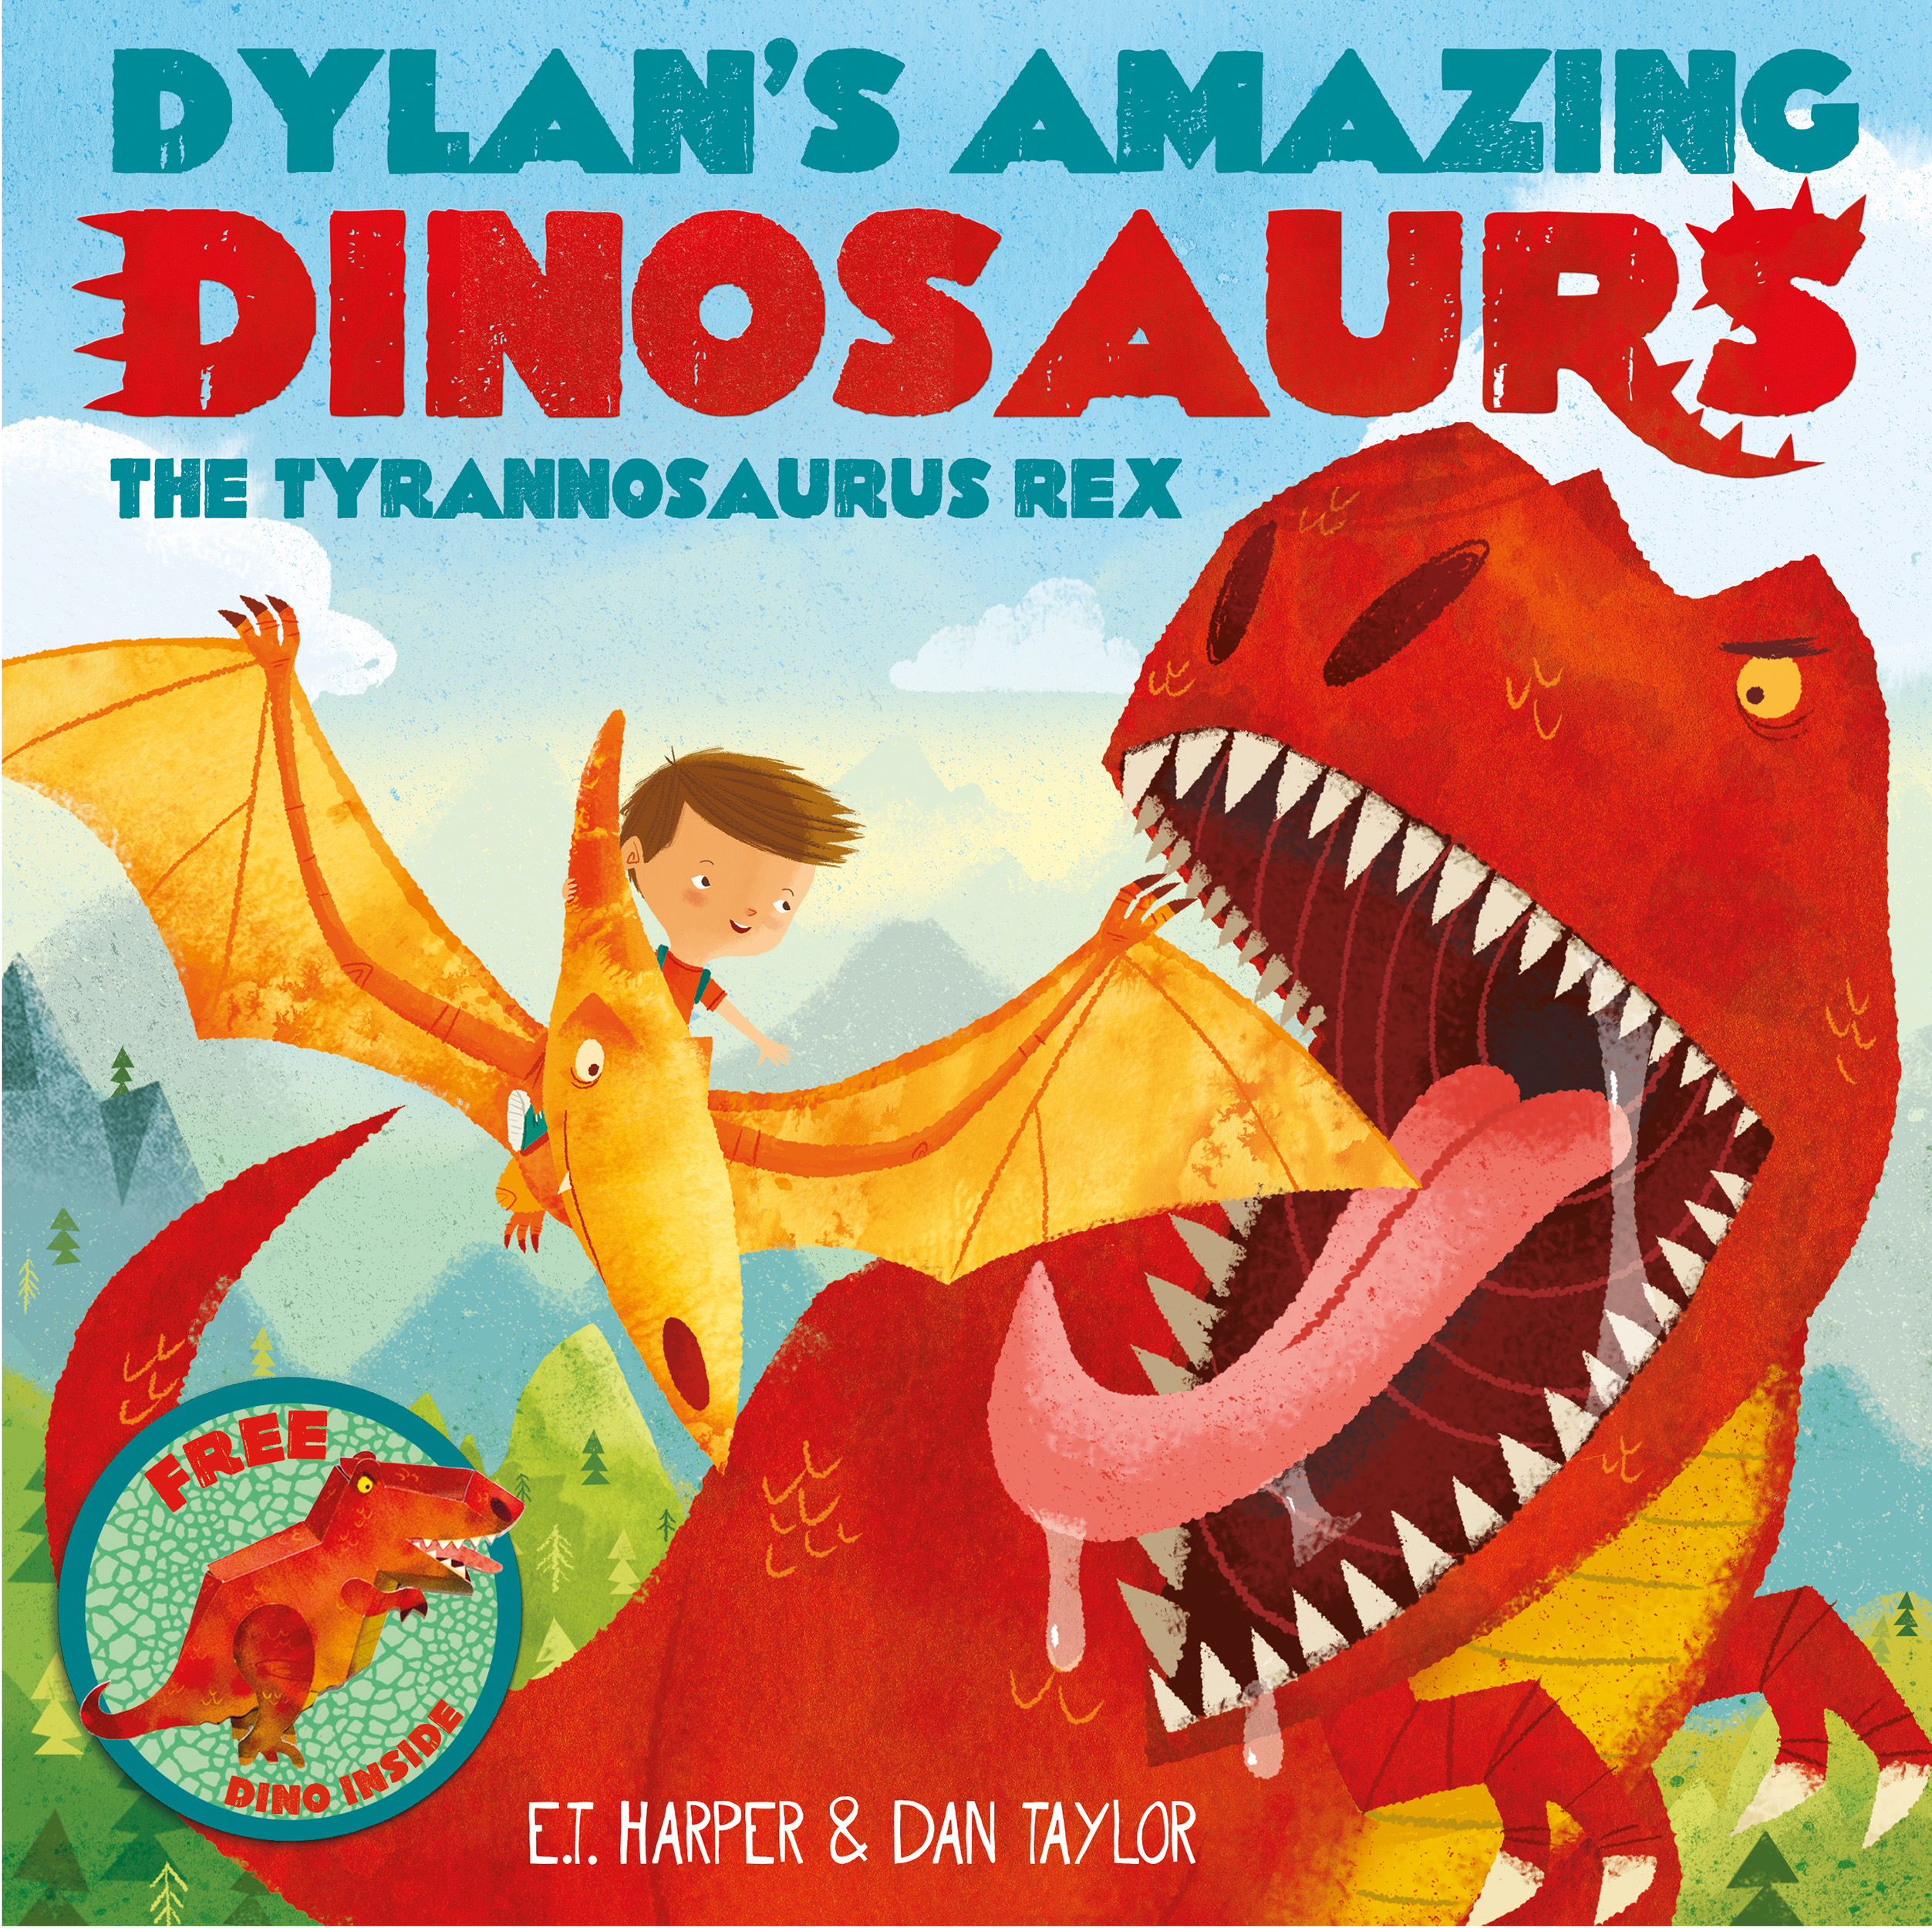 Dylans amazing dinosaurs the tyrannosaurus rex 9781471119347 hr